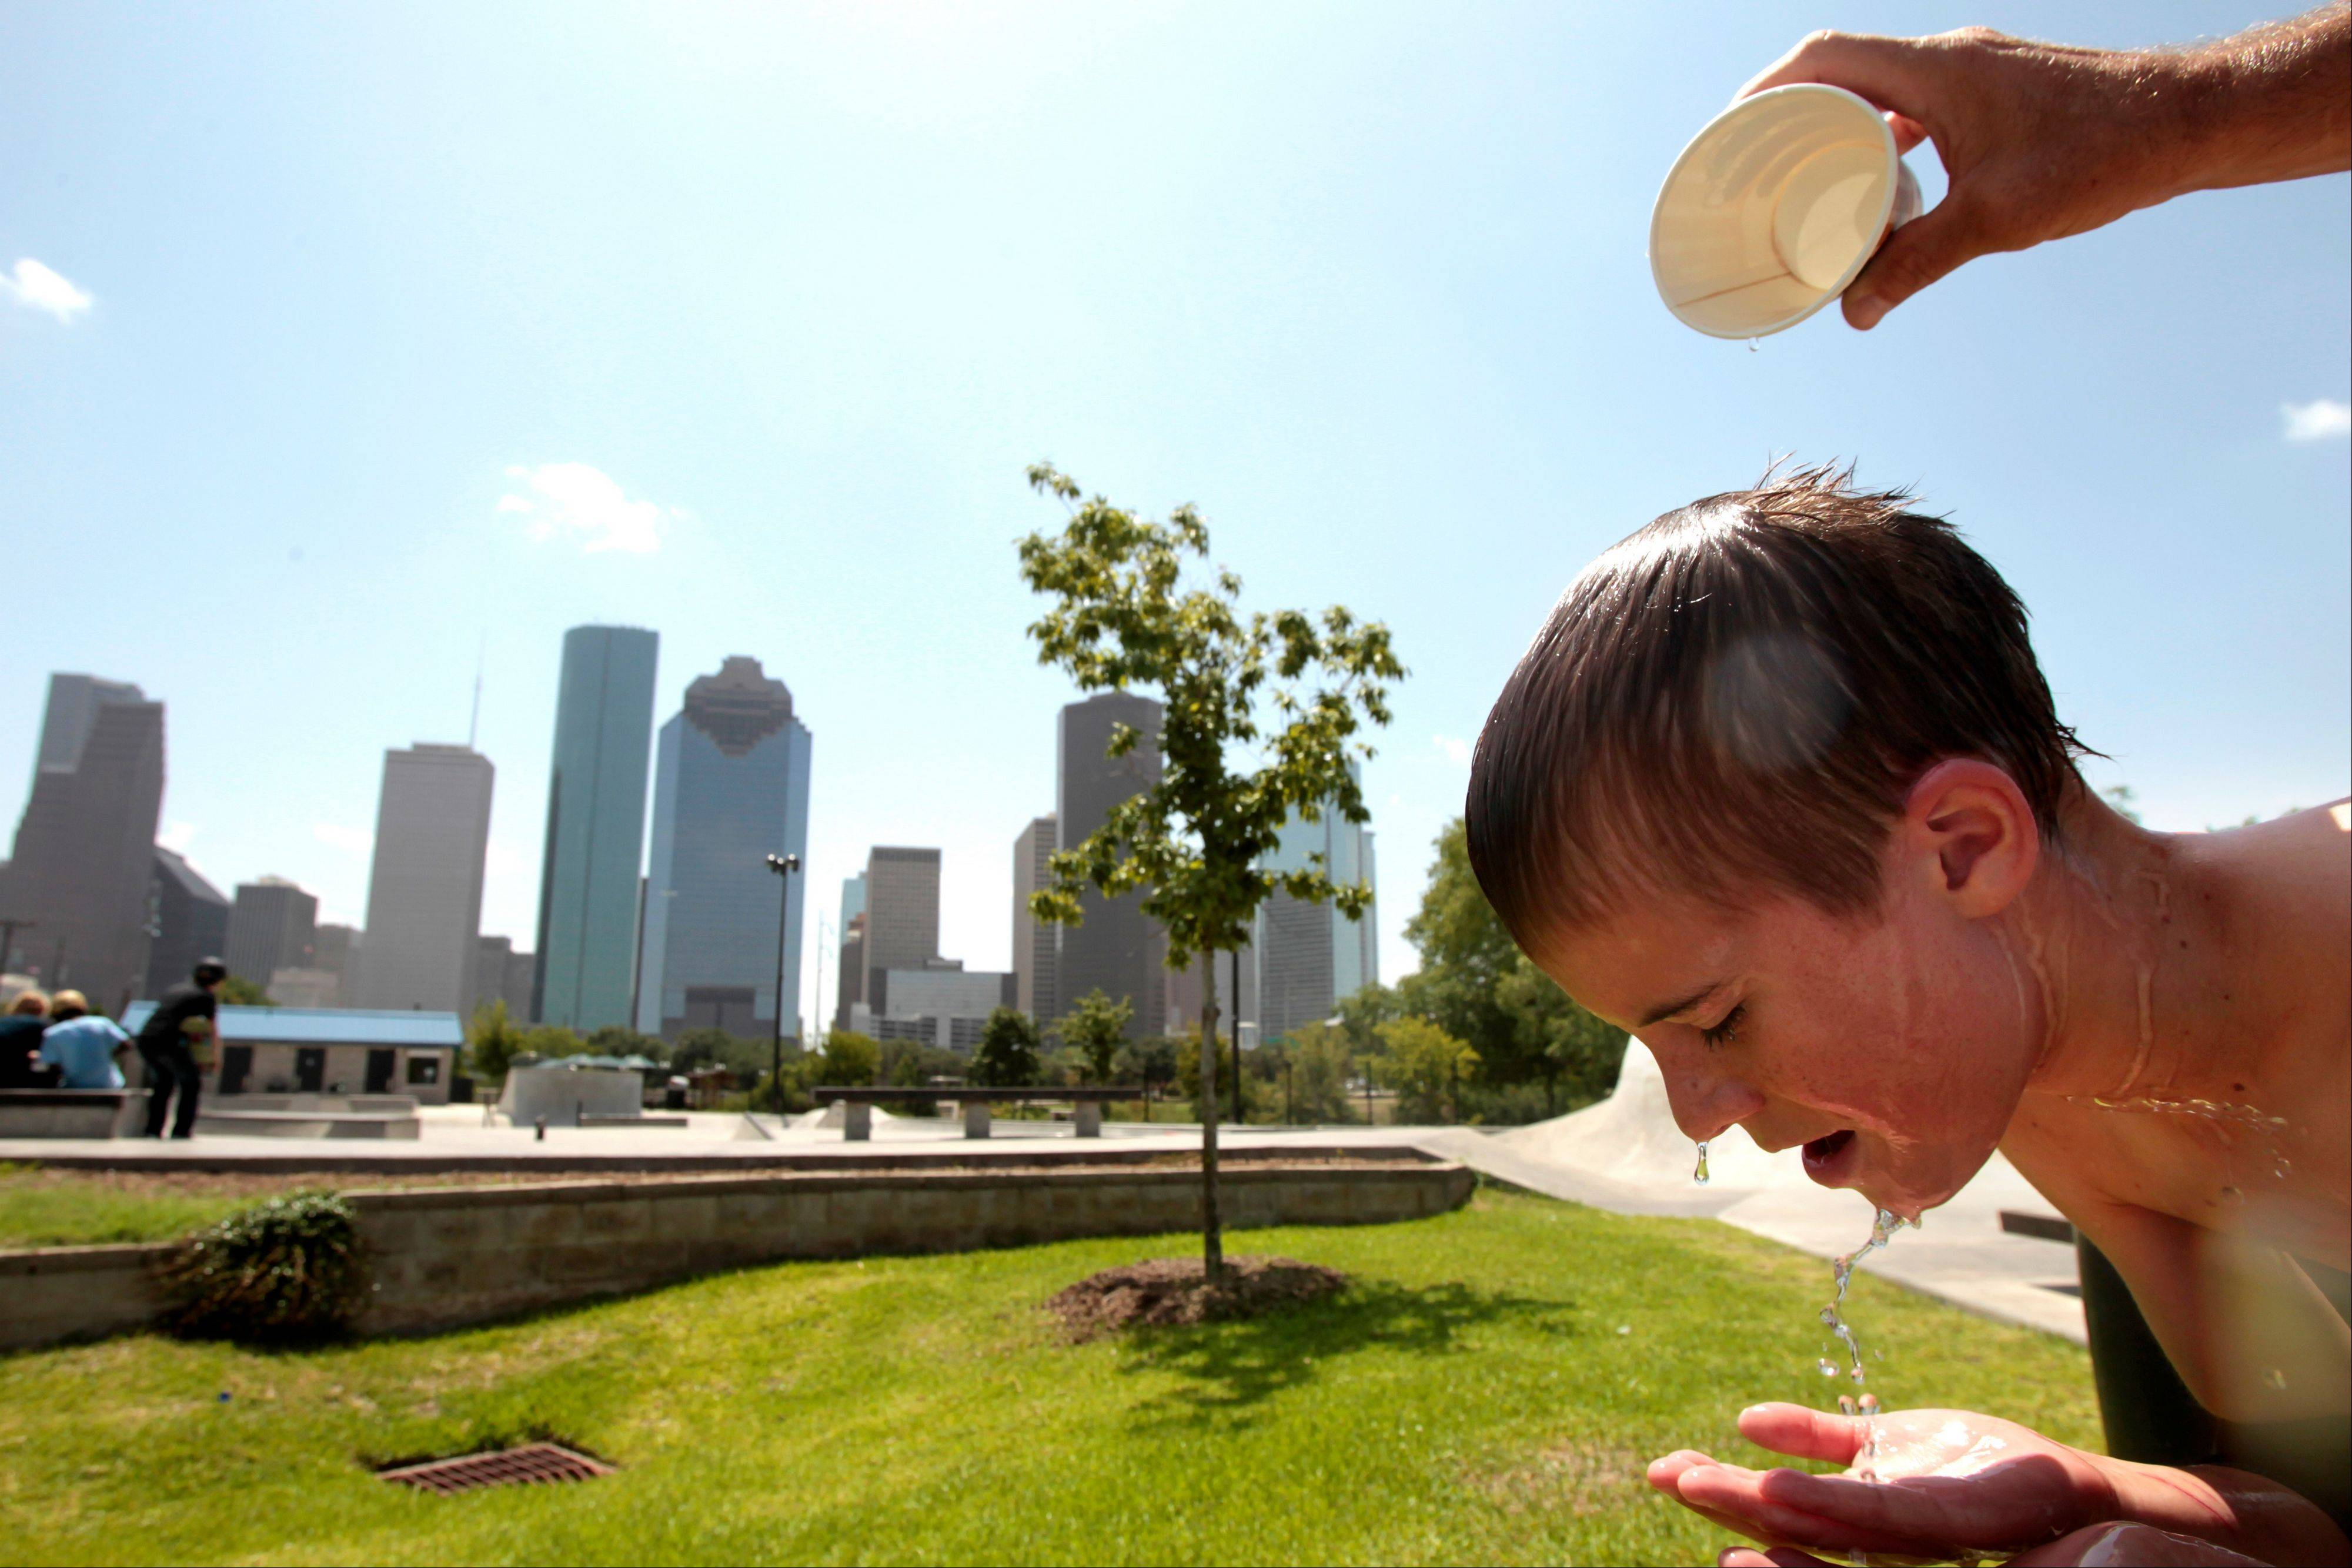 Texas just finished the hottest June through August on record in the U.S., the National Weather Service said Thursday.